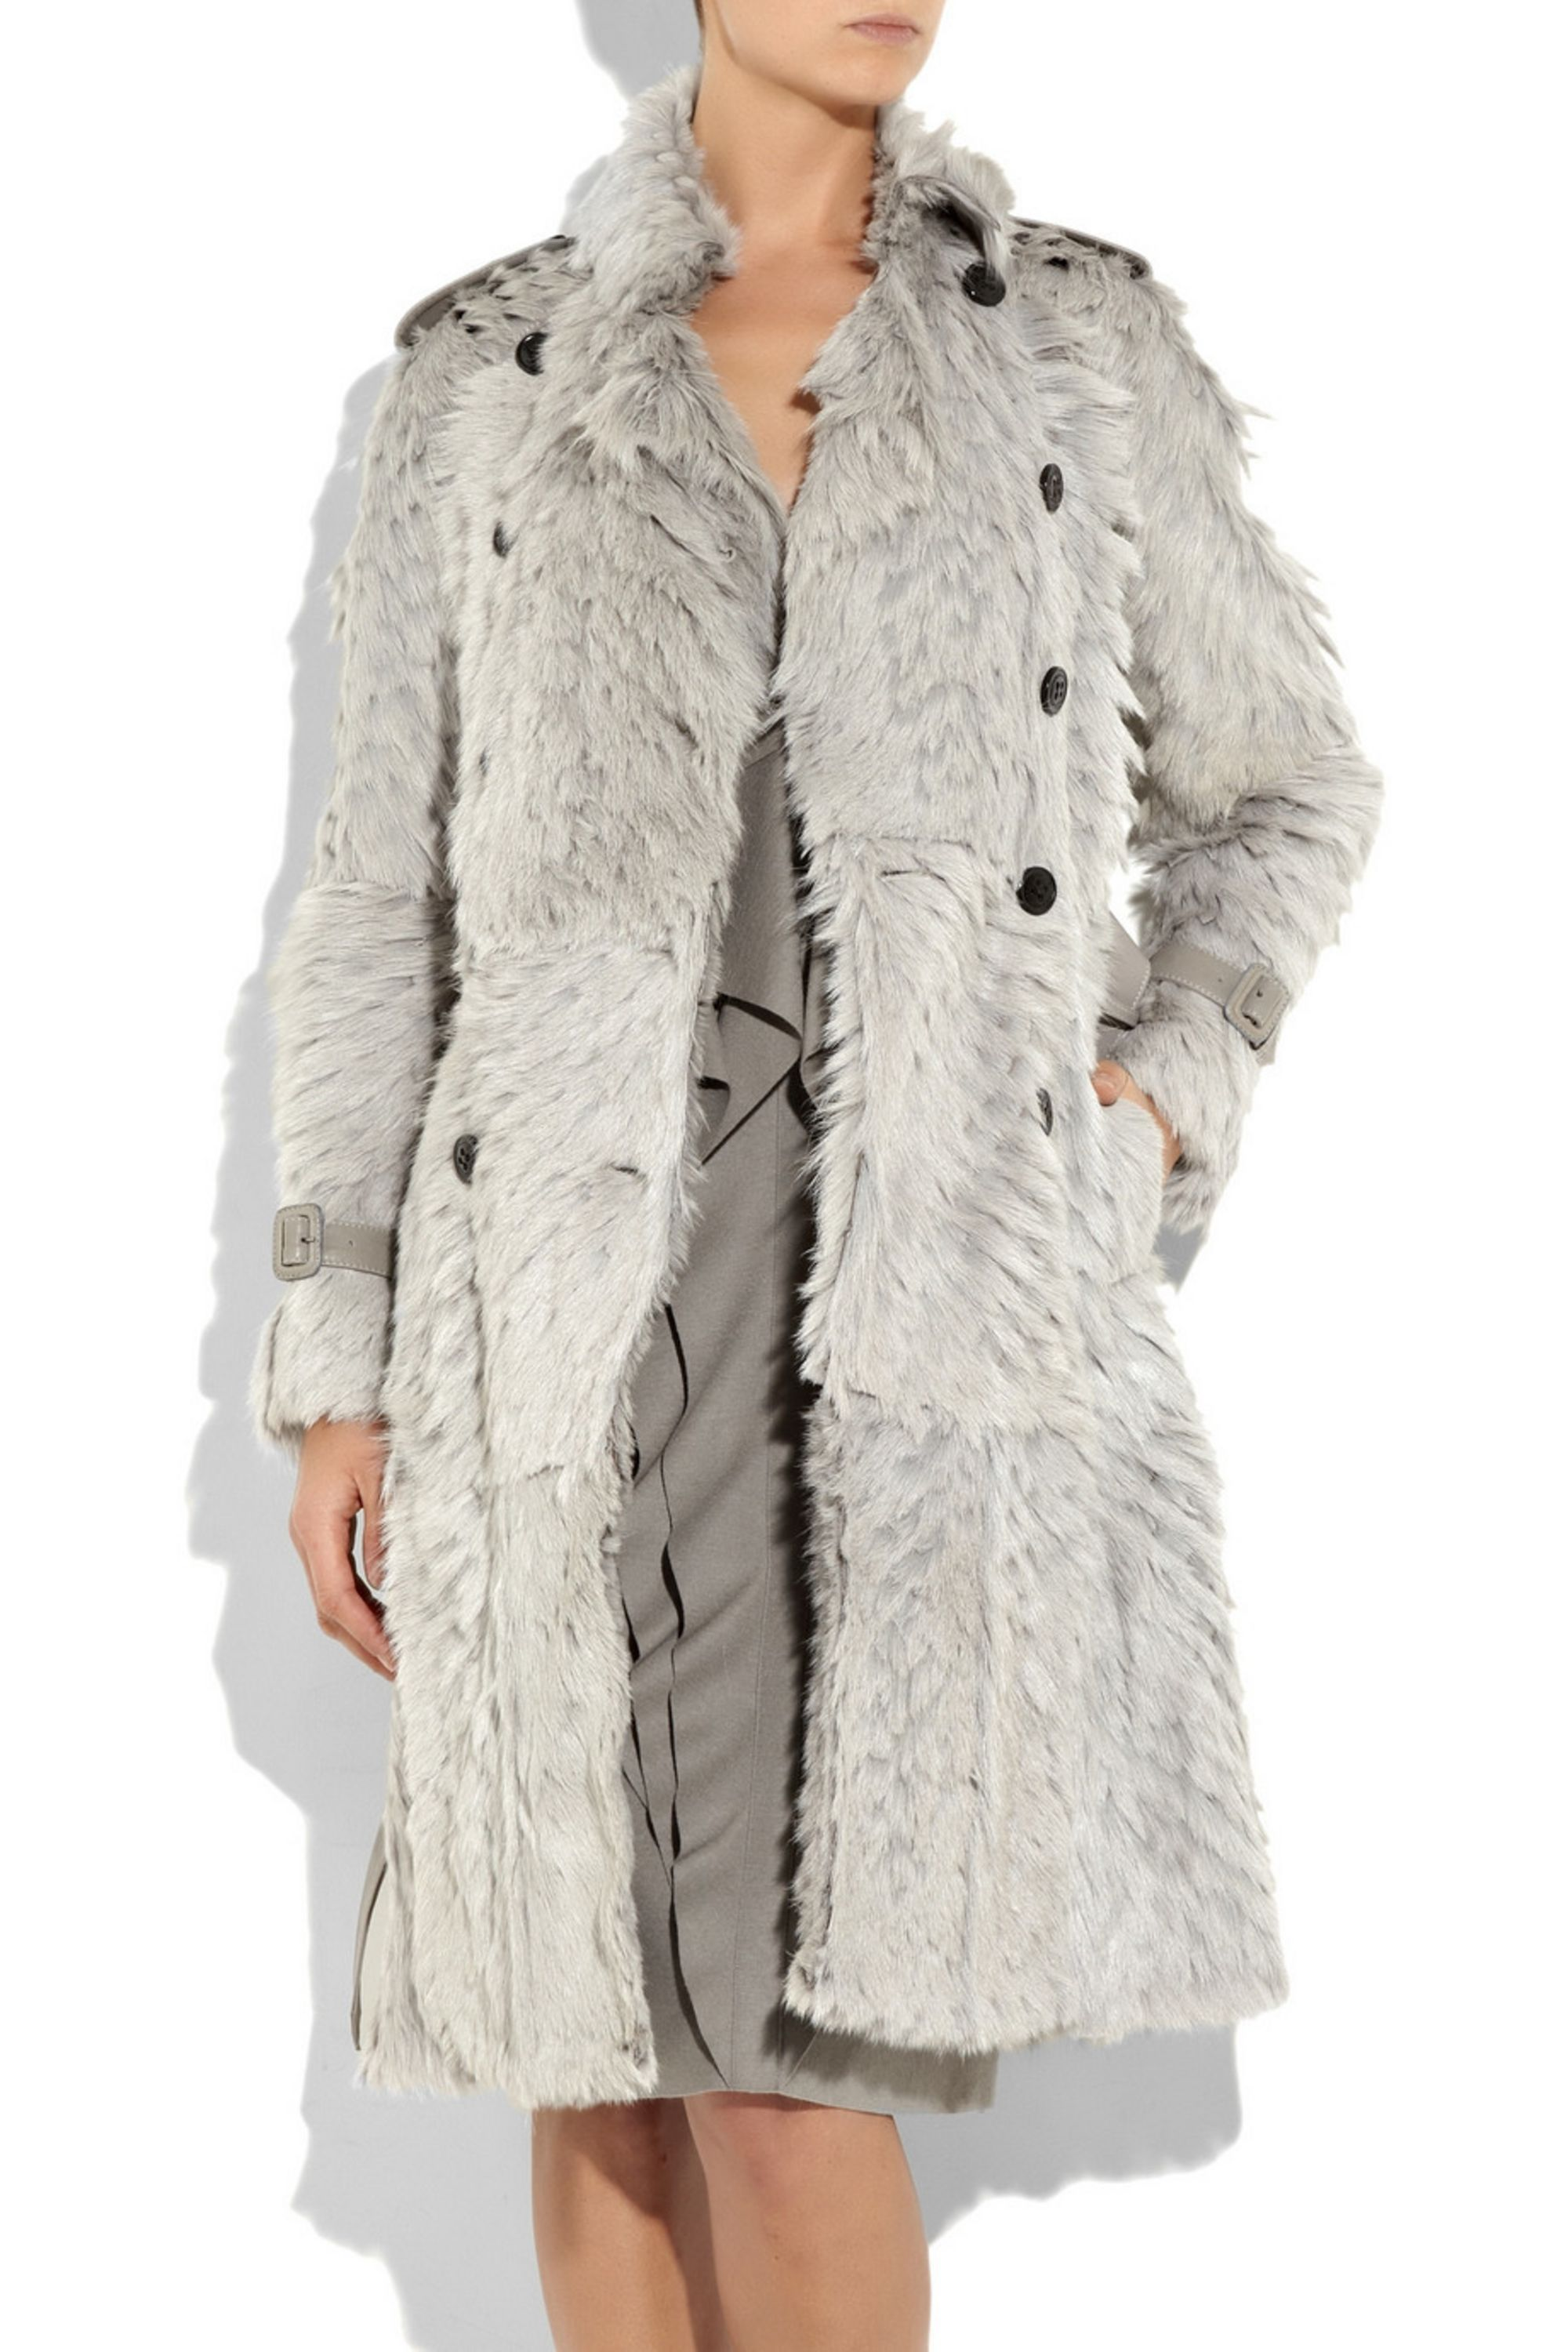 Burberry Goat hair trench coat